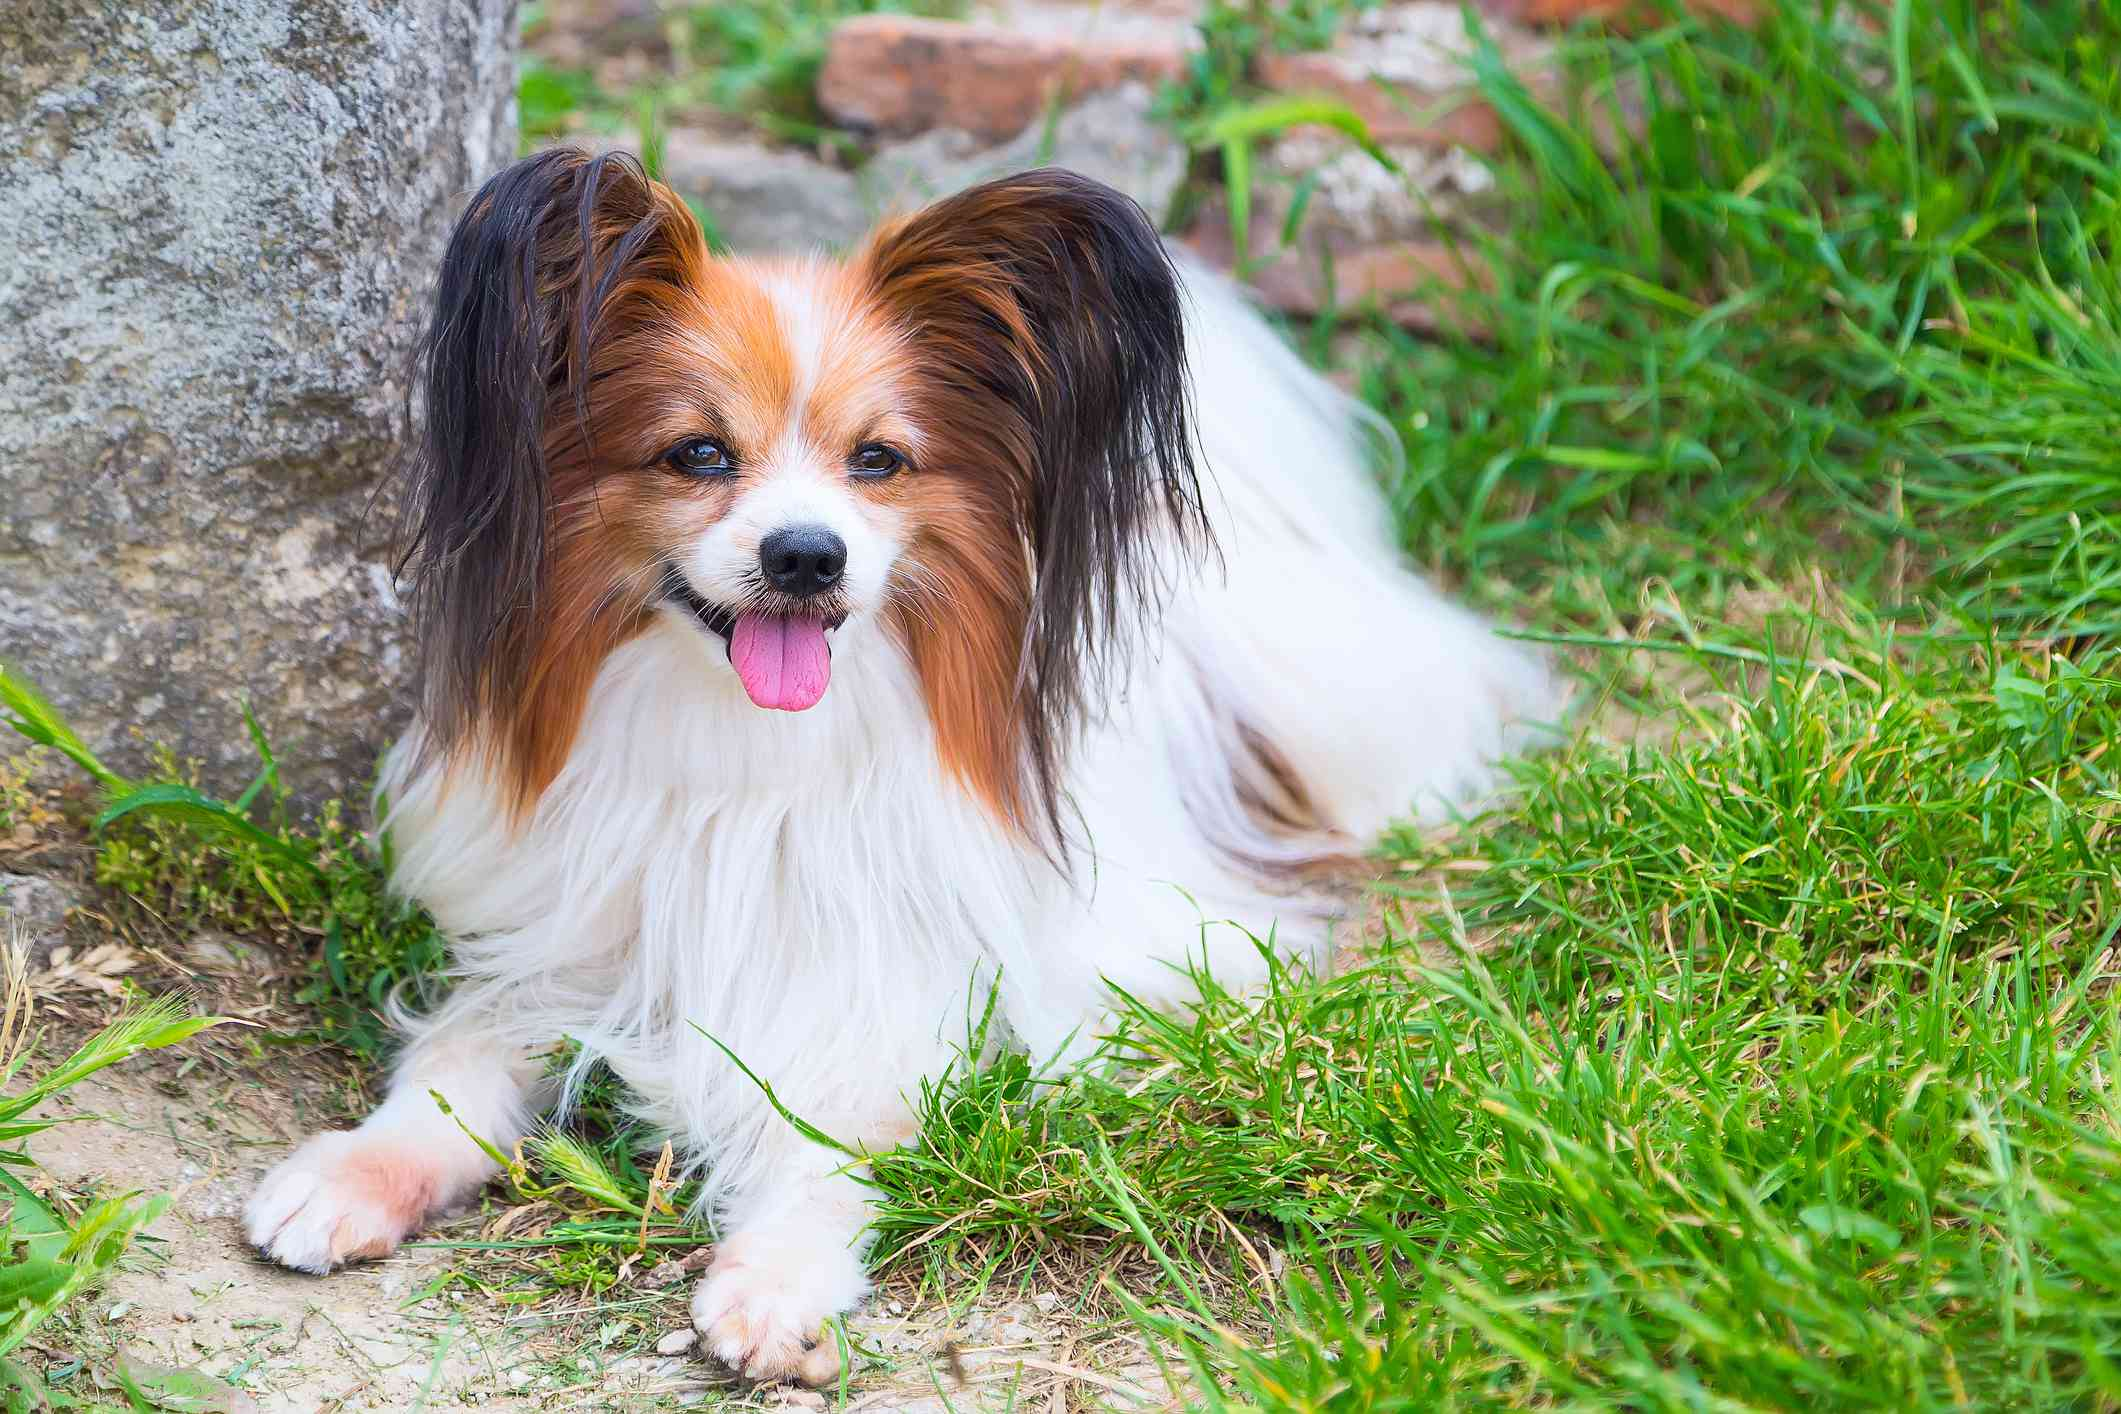 papillon dog with brown and black ears lying in green grass next to stone